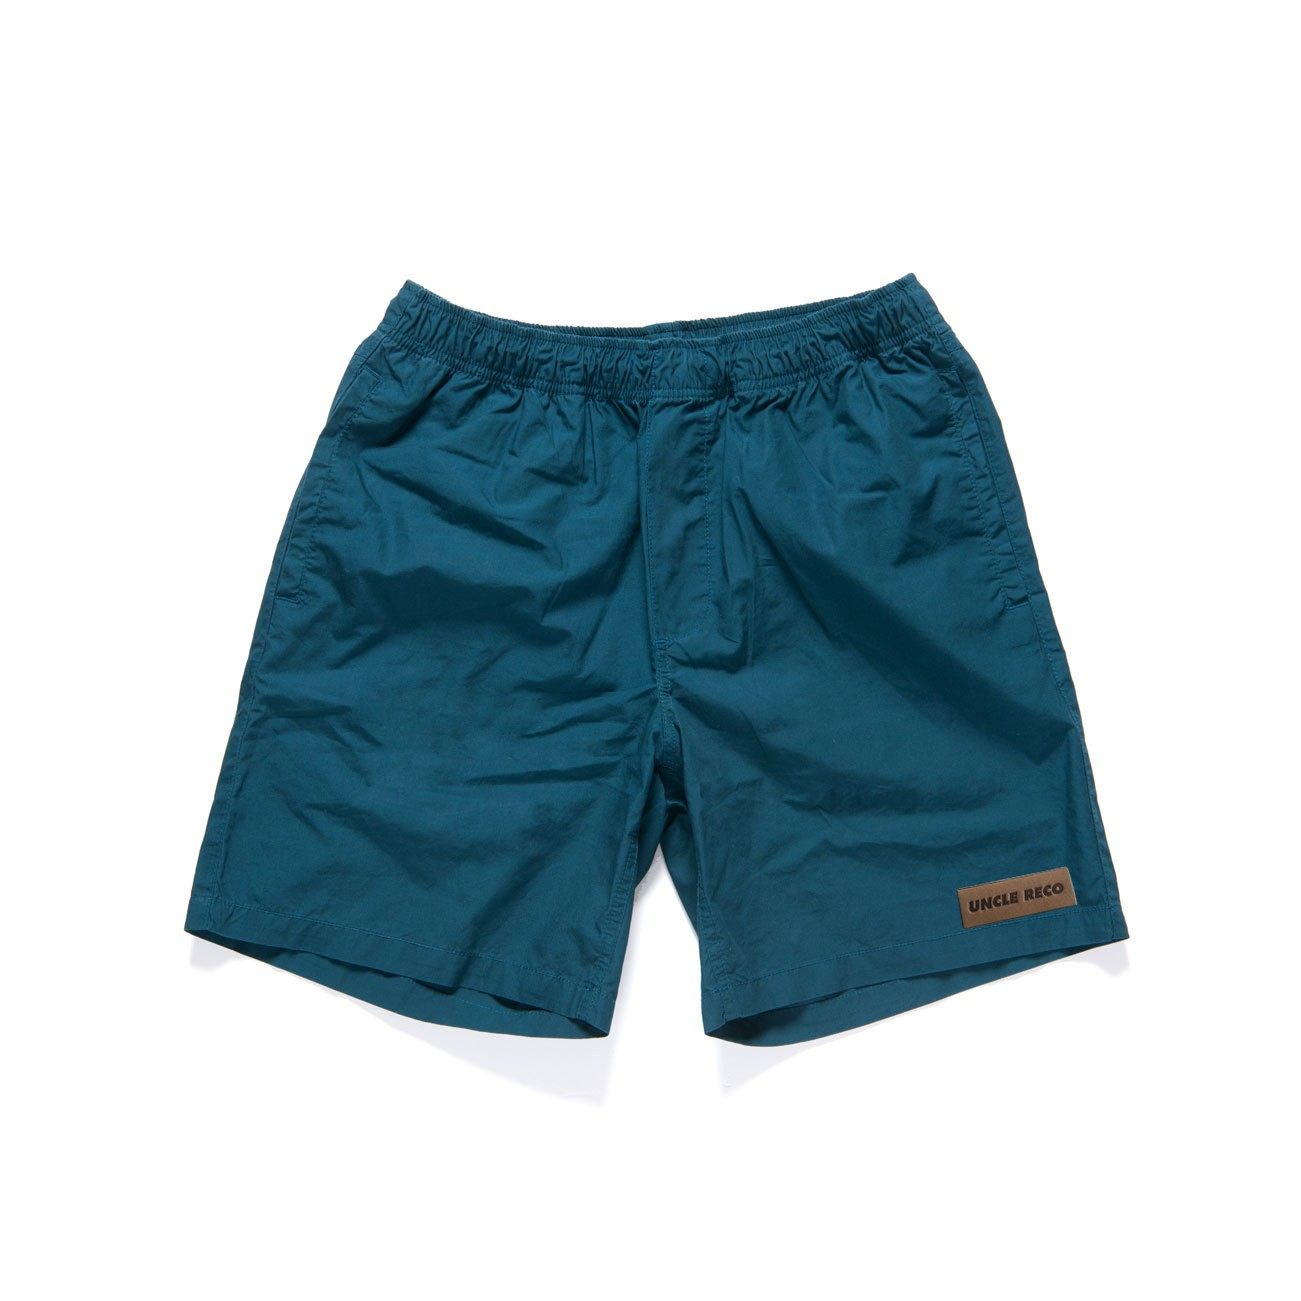 BLUE RECO BEACH SHORTS